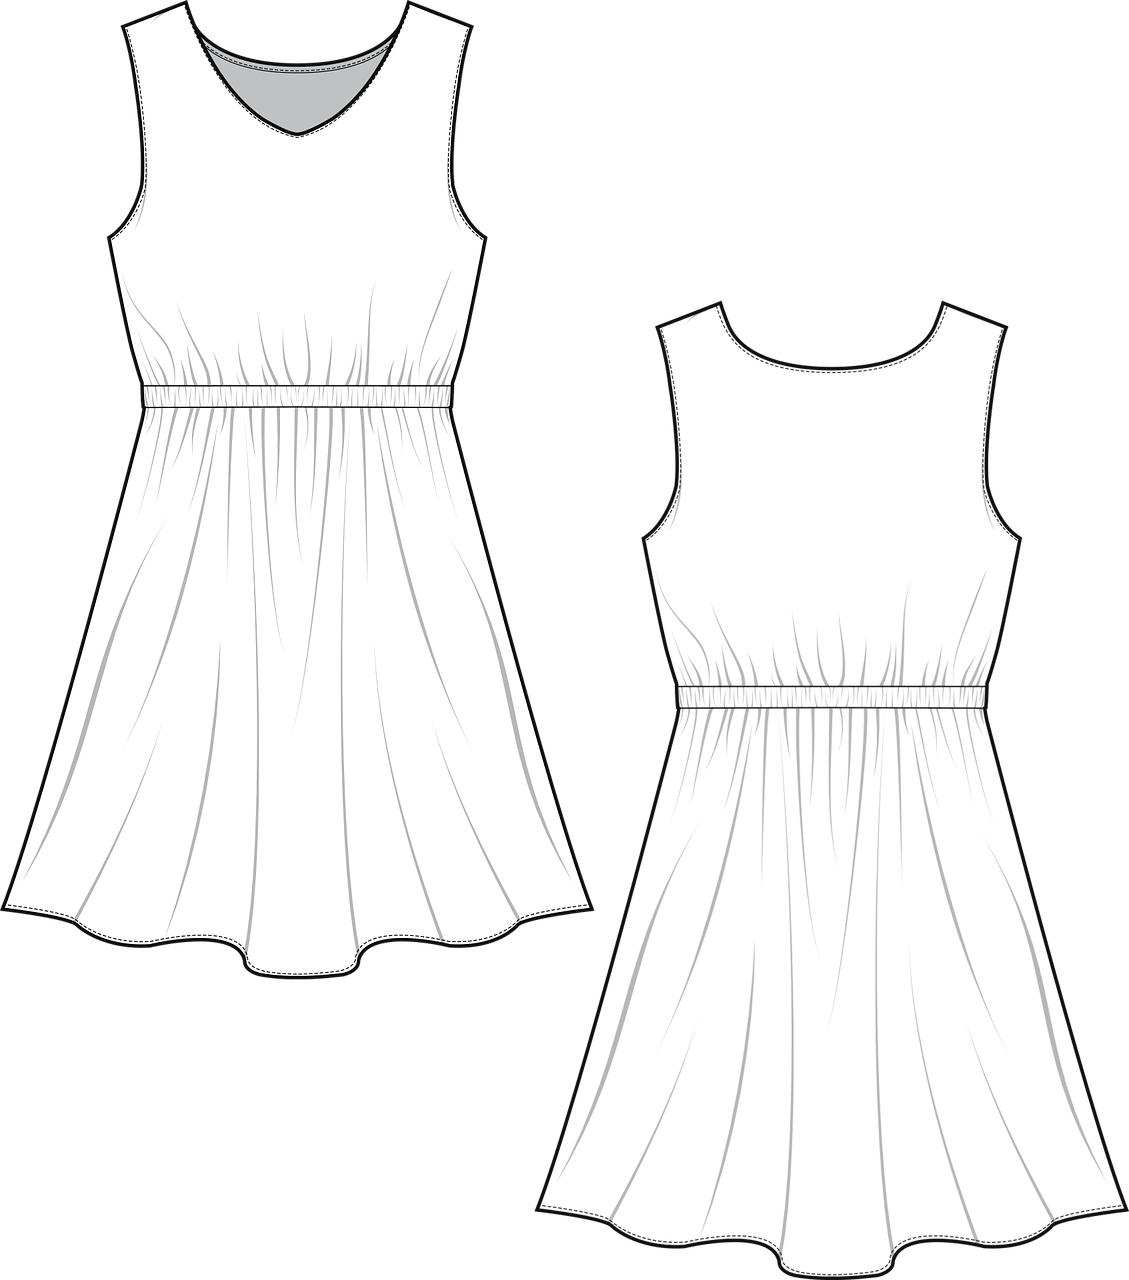 Dress Fashion Sketch Free Vector Graphic On Pixabay